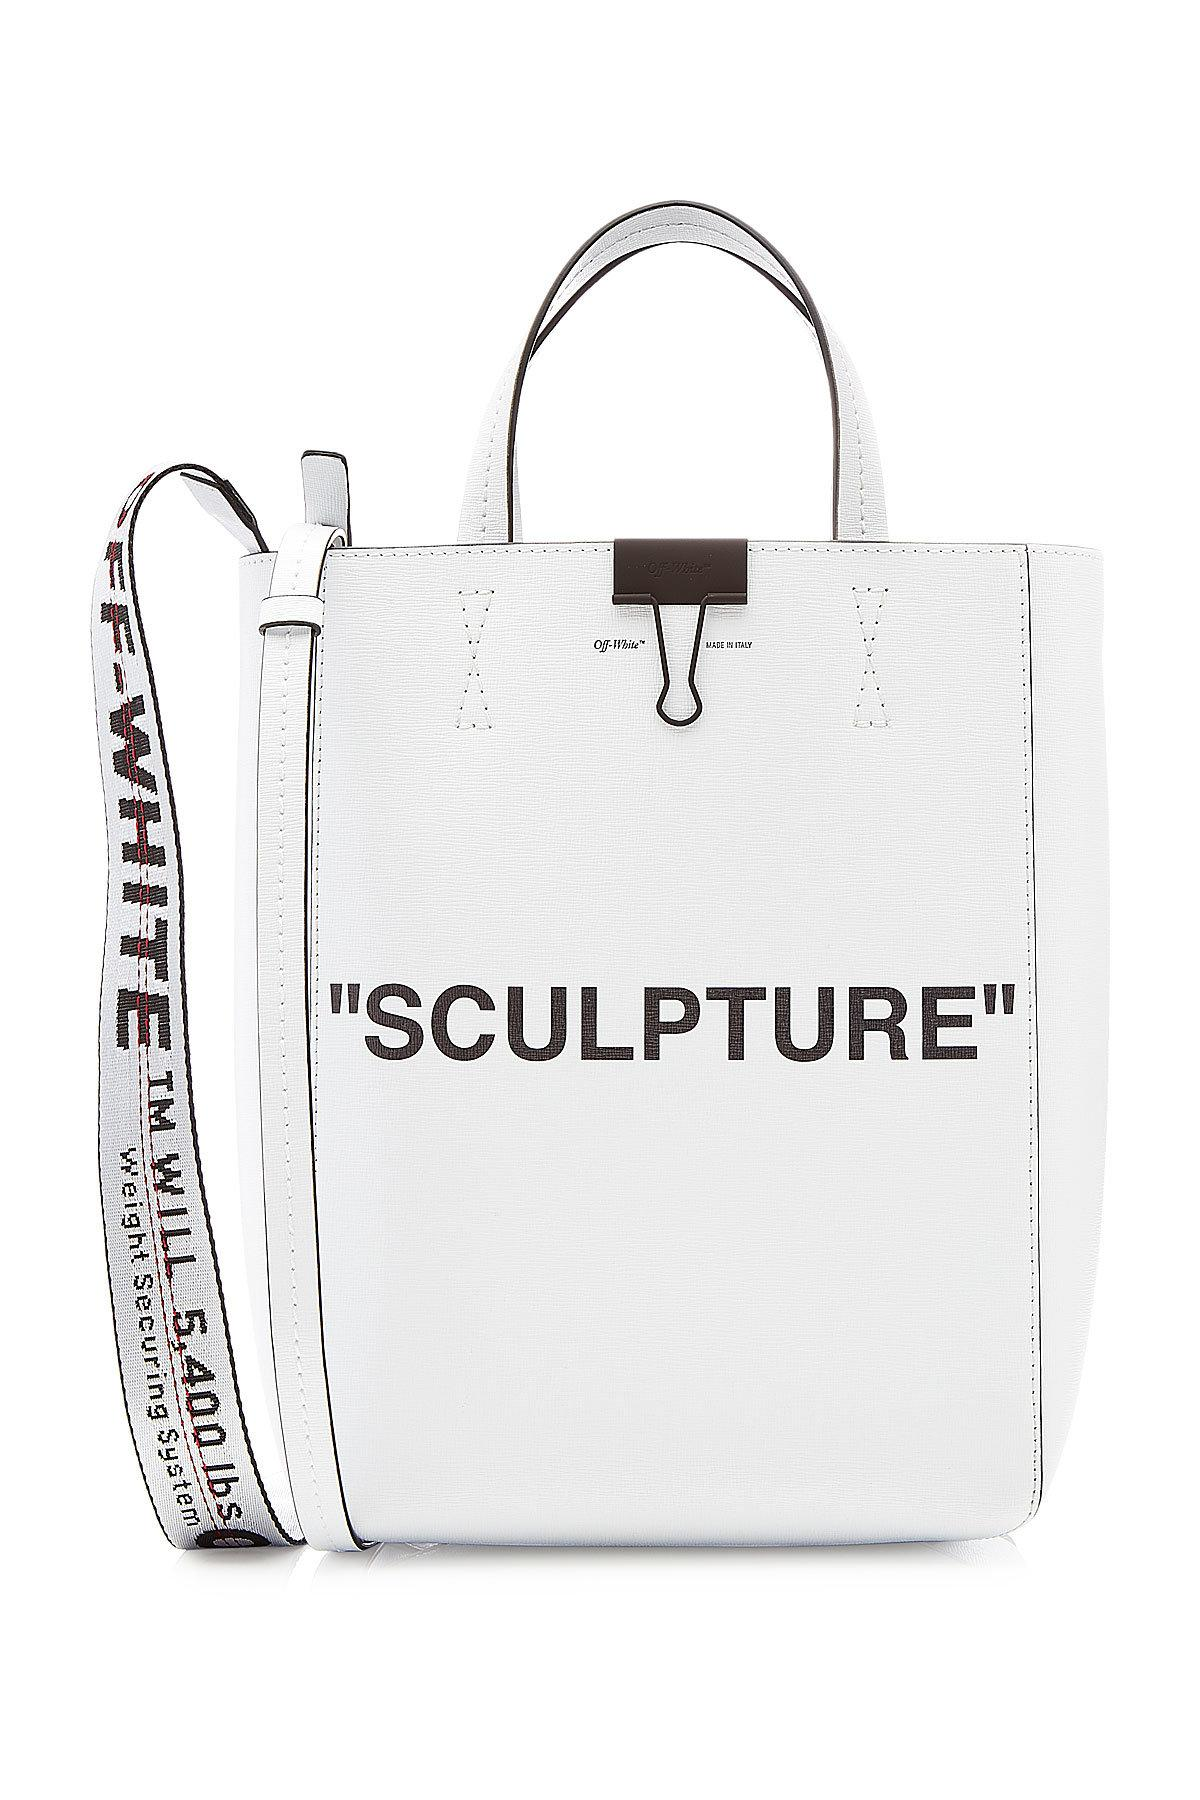 e6bf2130fbb1 Off-White c/o Virgil Abloh Medium Sculpture Leather Tote - Lyst